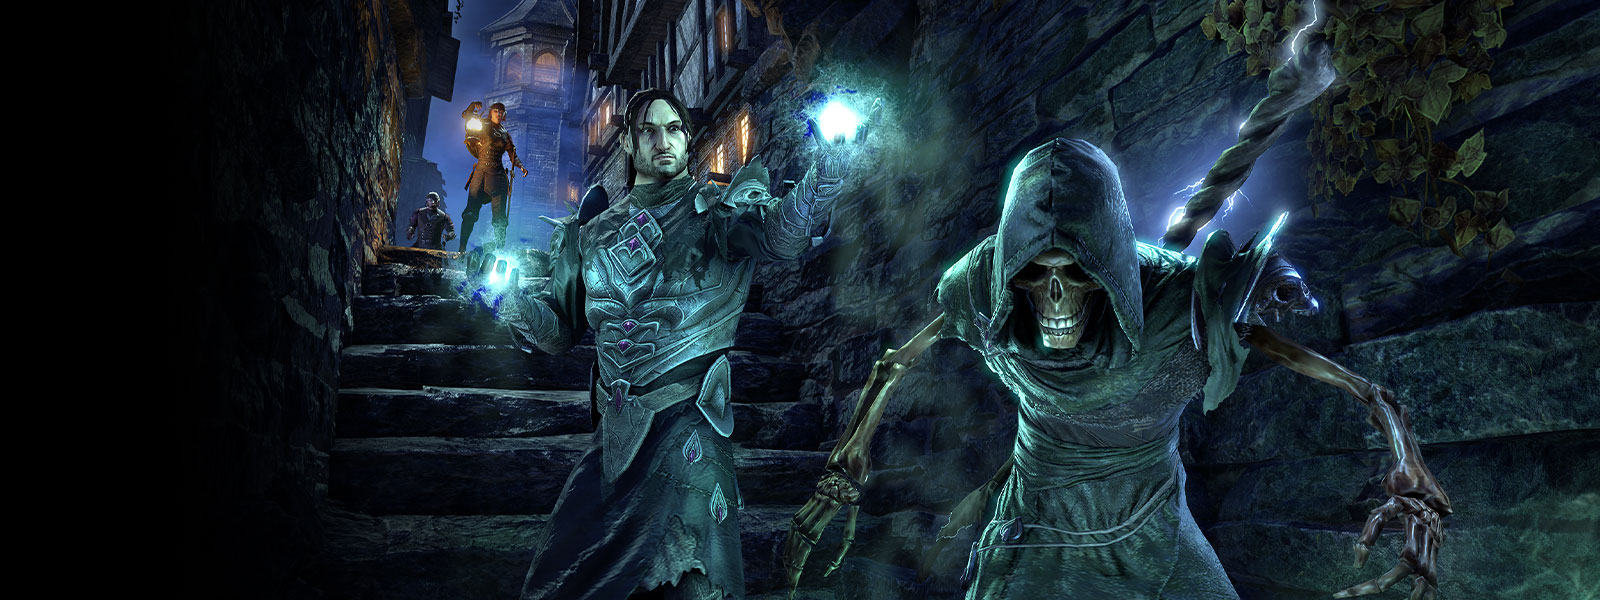 Skeleton glowing blue with hood with a man in armor and glowing blue orbs in his hands in an alley